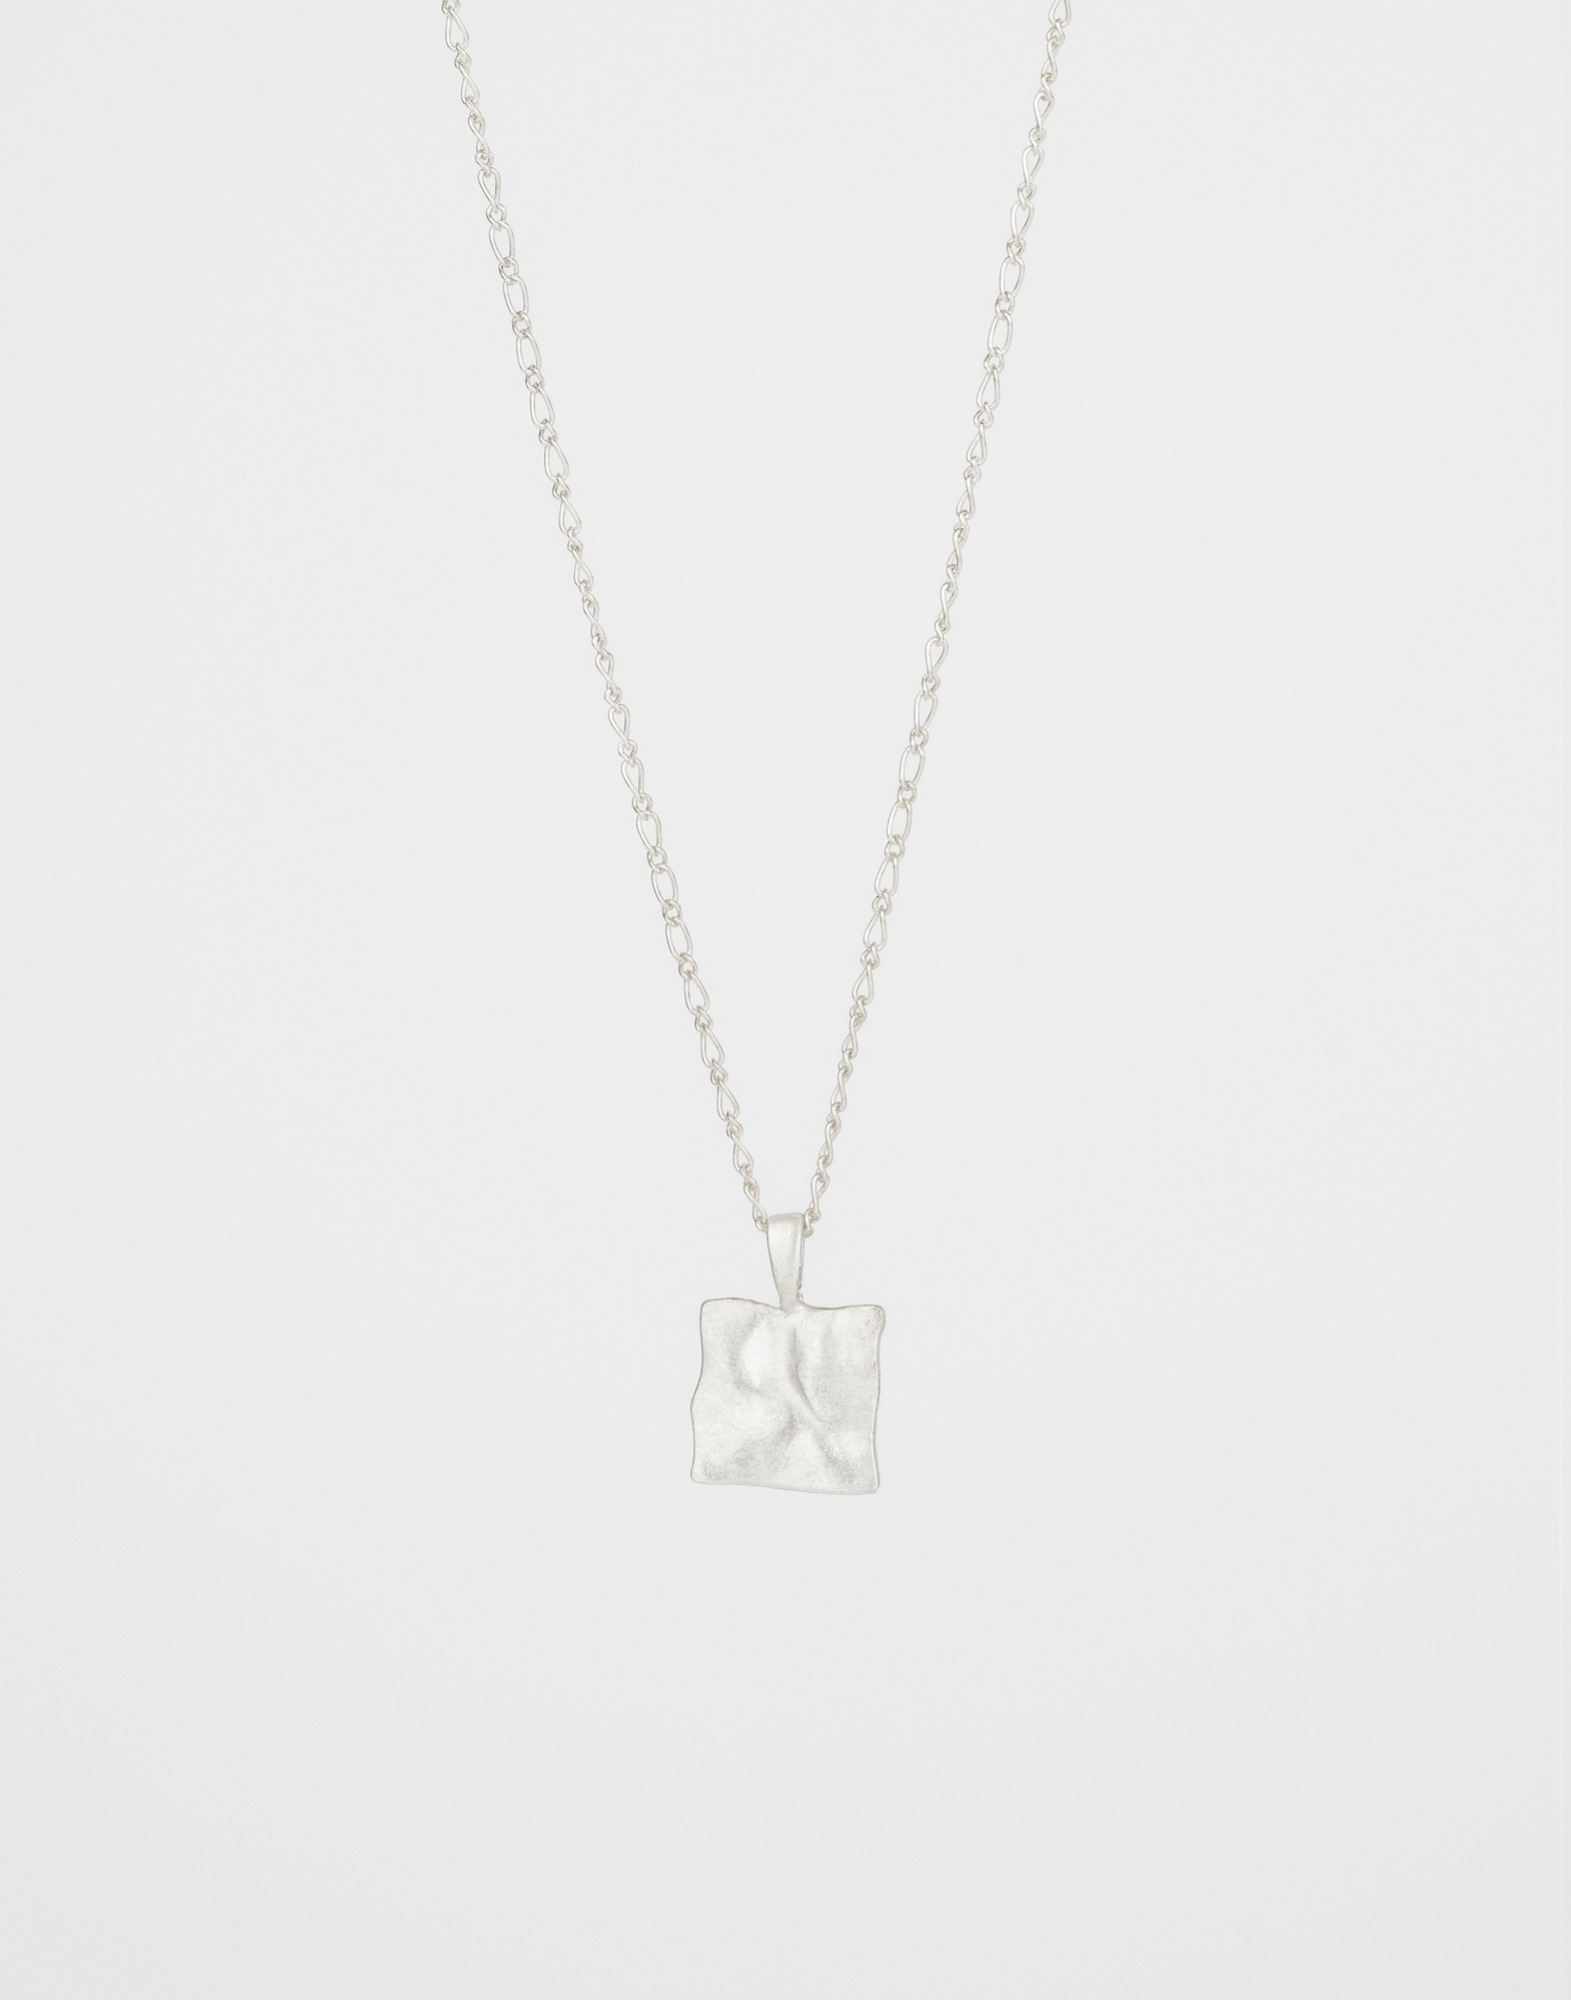 999 silver base square necklace